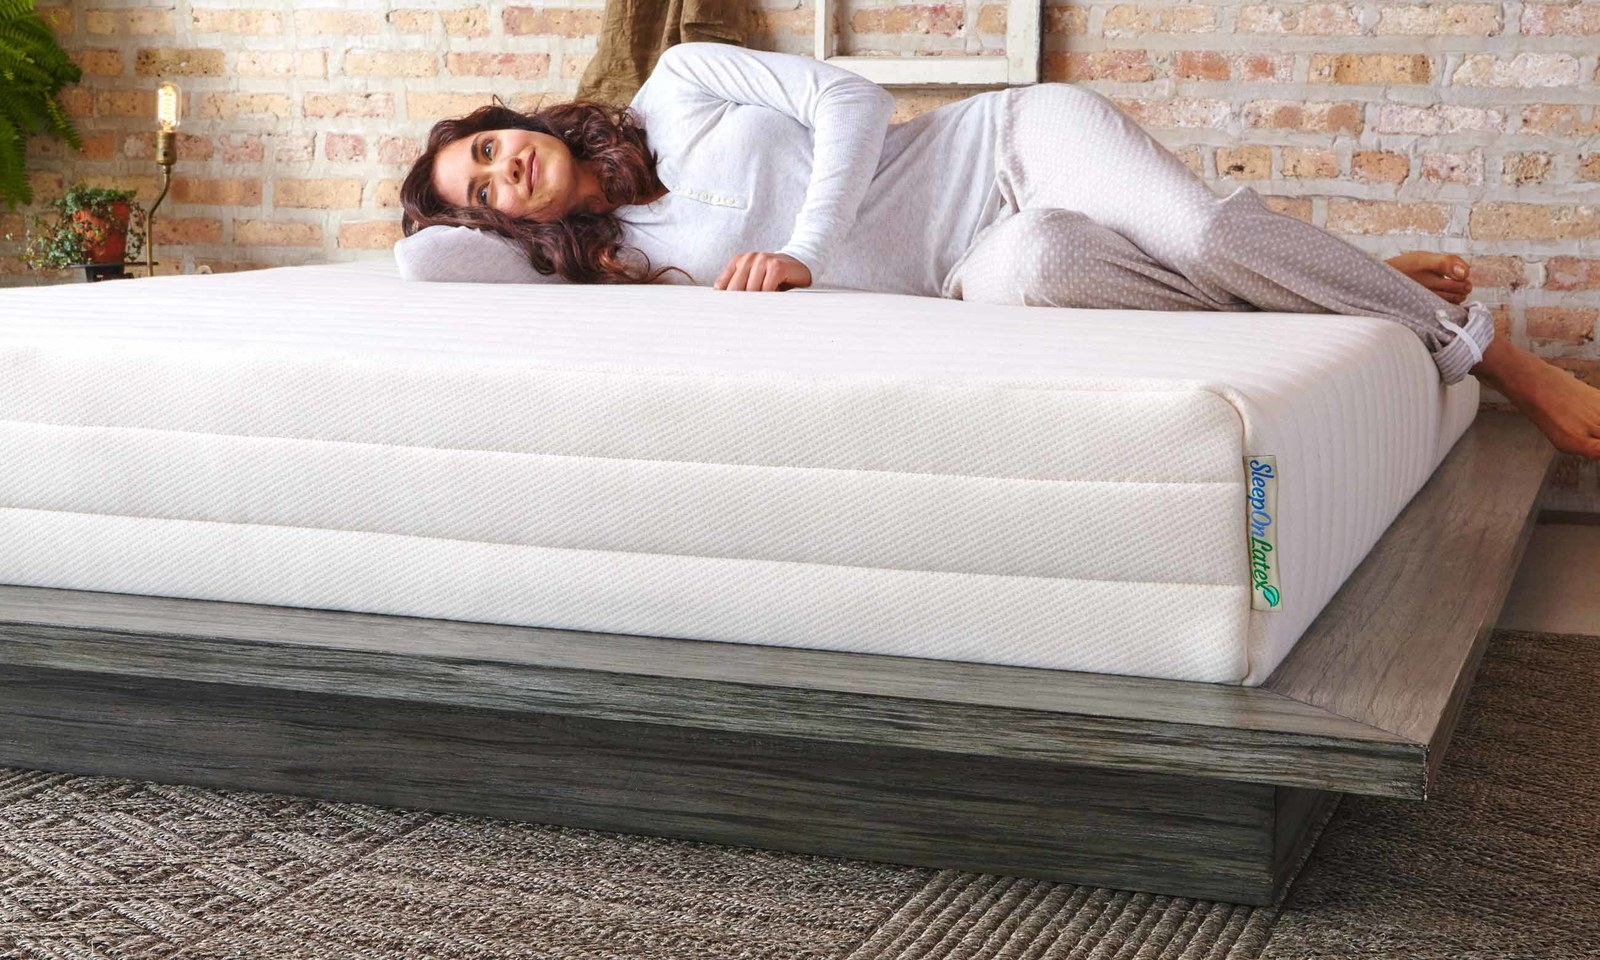 sleep on latex mattresses are 100 natural latex and are certified and tested for harmful substances